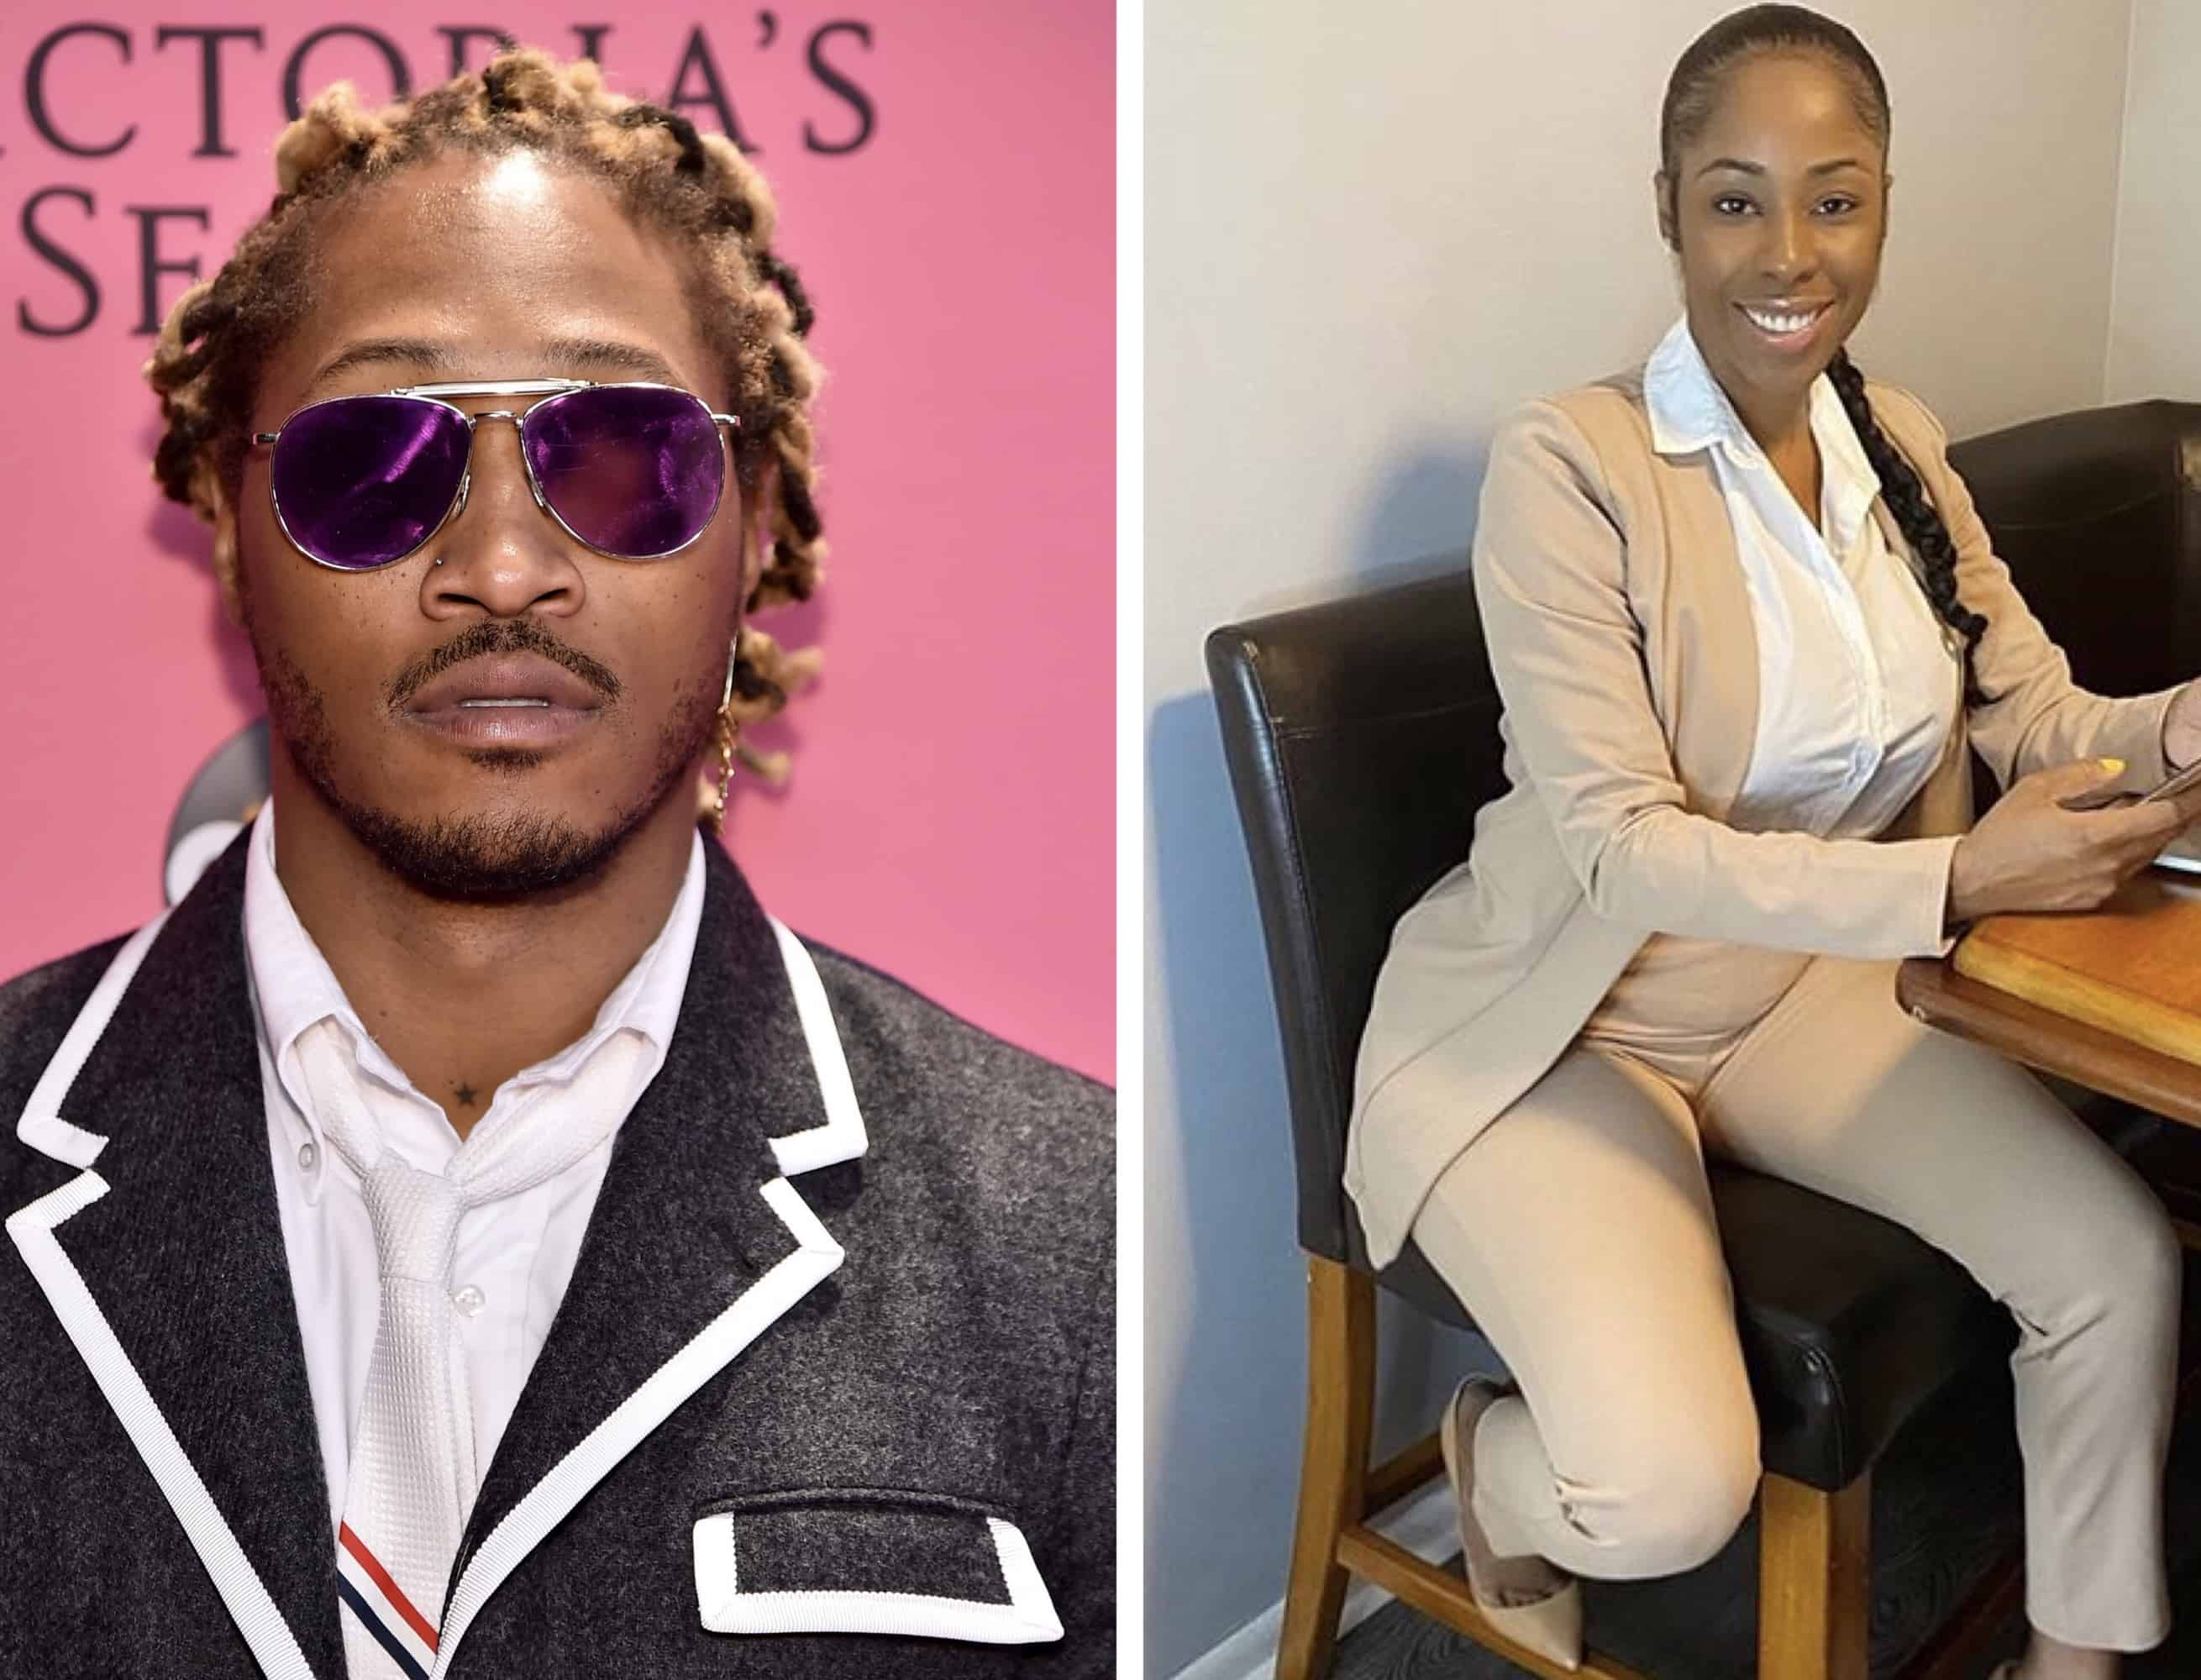 A DNA test has reportedly confirmed that Future is in fact the father of Eliza Reign's 1-year-old daughter.